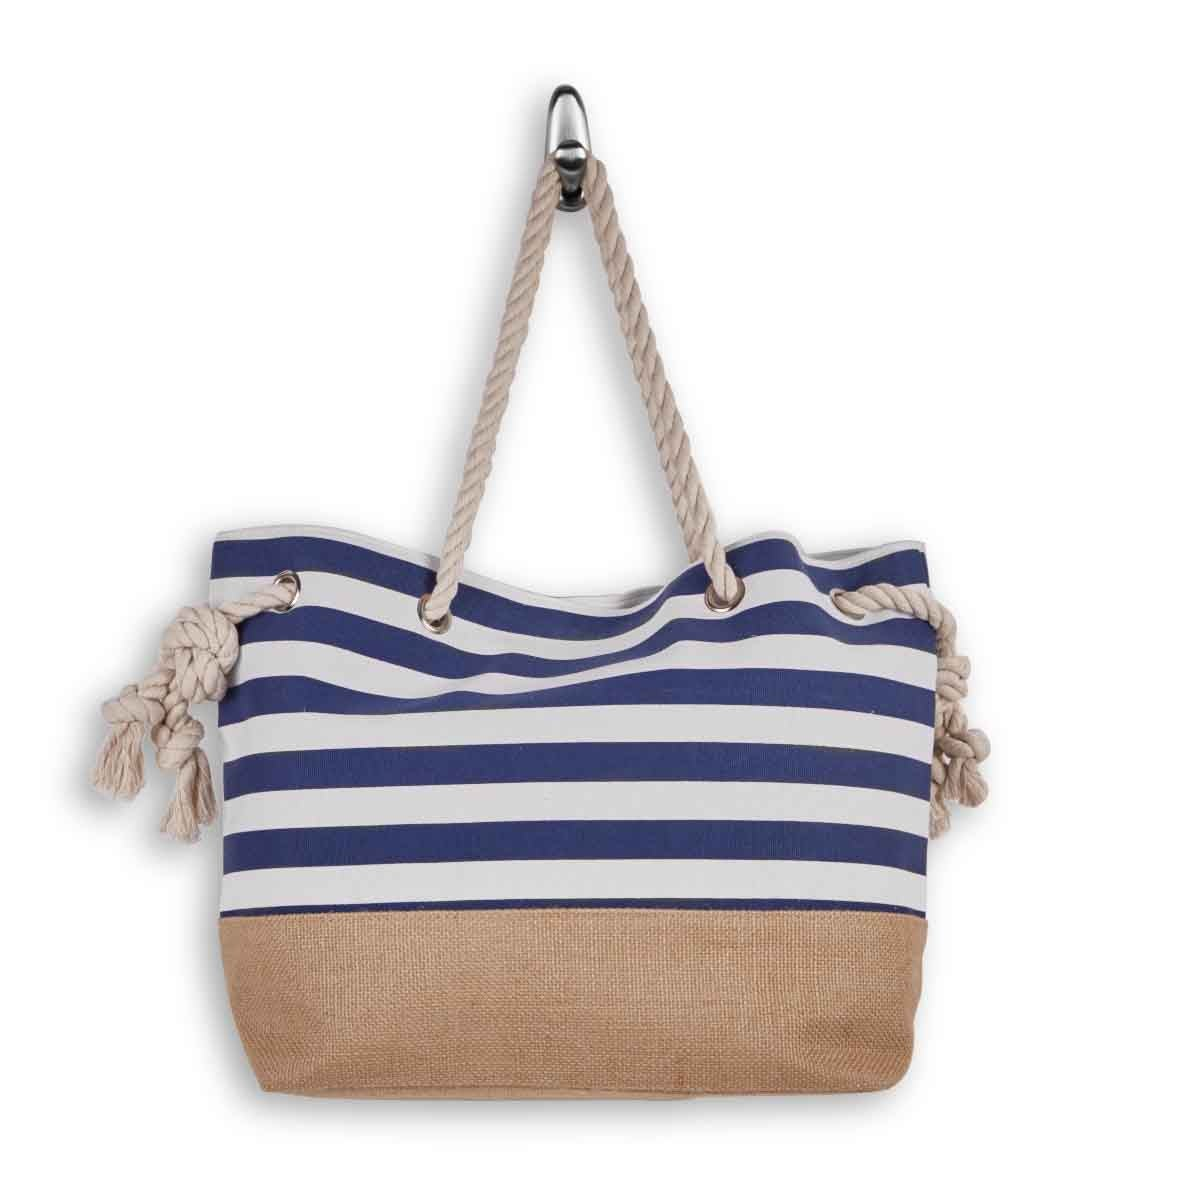 Lds nvy/wht large canvas tote bag